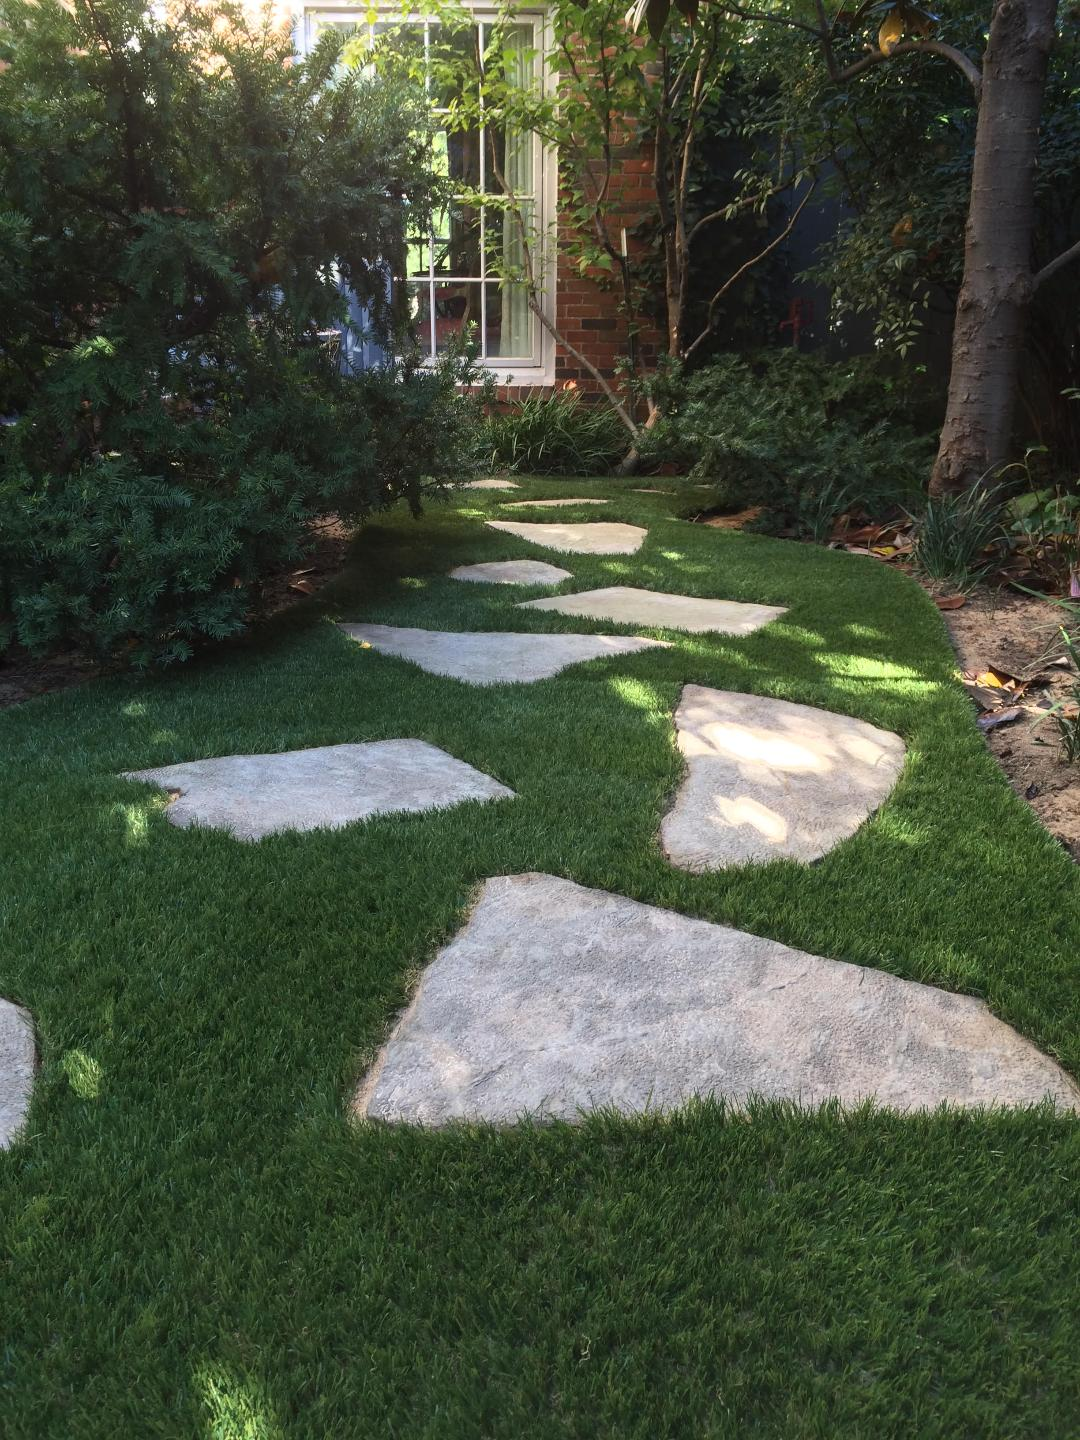 Buy Fake Grass Utilize A Fake Grass Yard For Your Outdoor Remodel